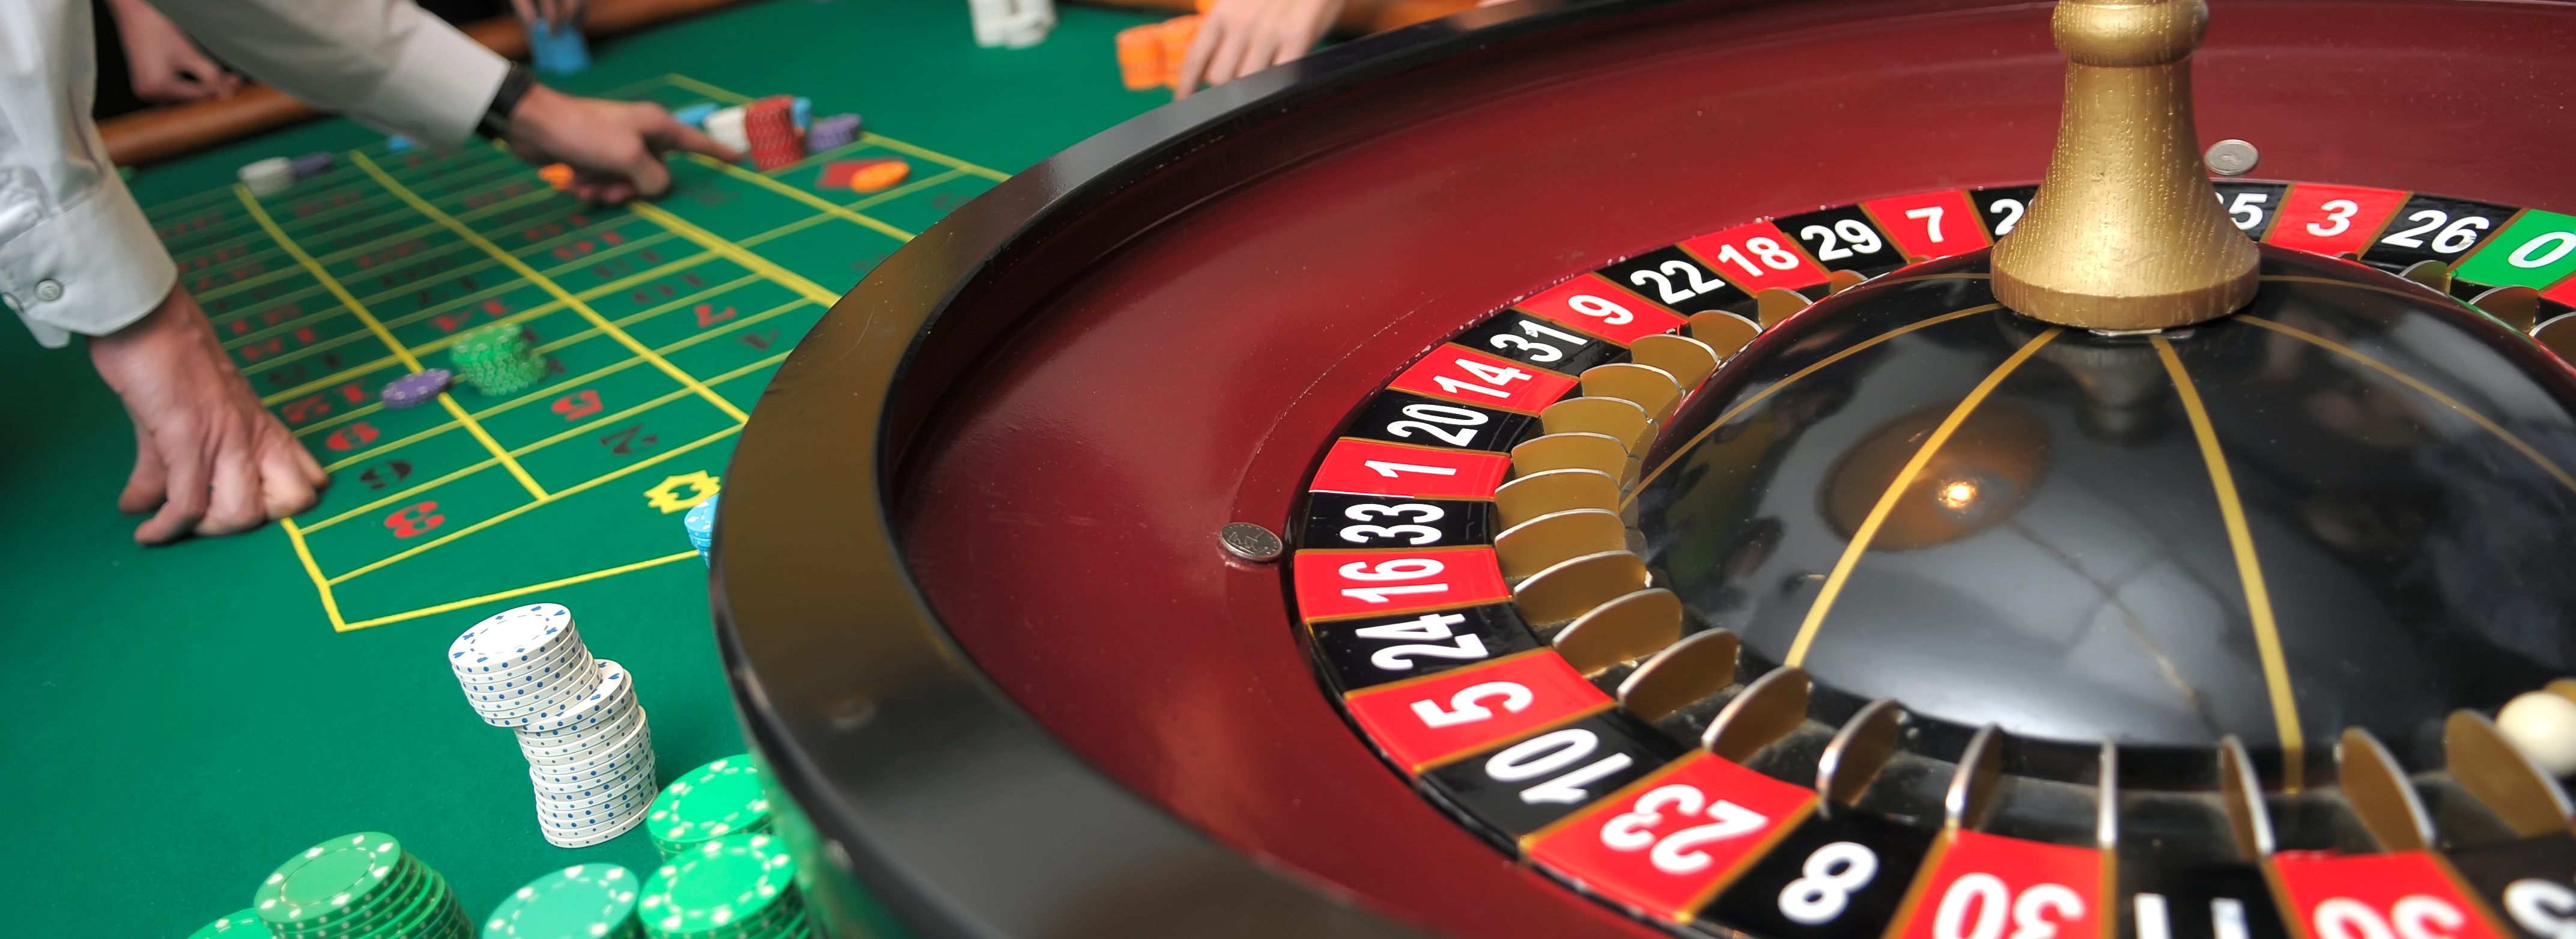 Meilleur casino finistere my wife is a gambling maestro cast